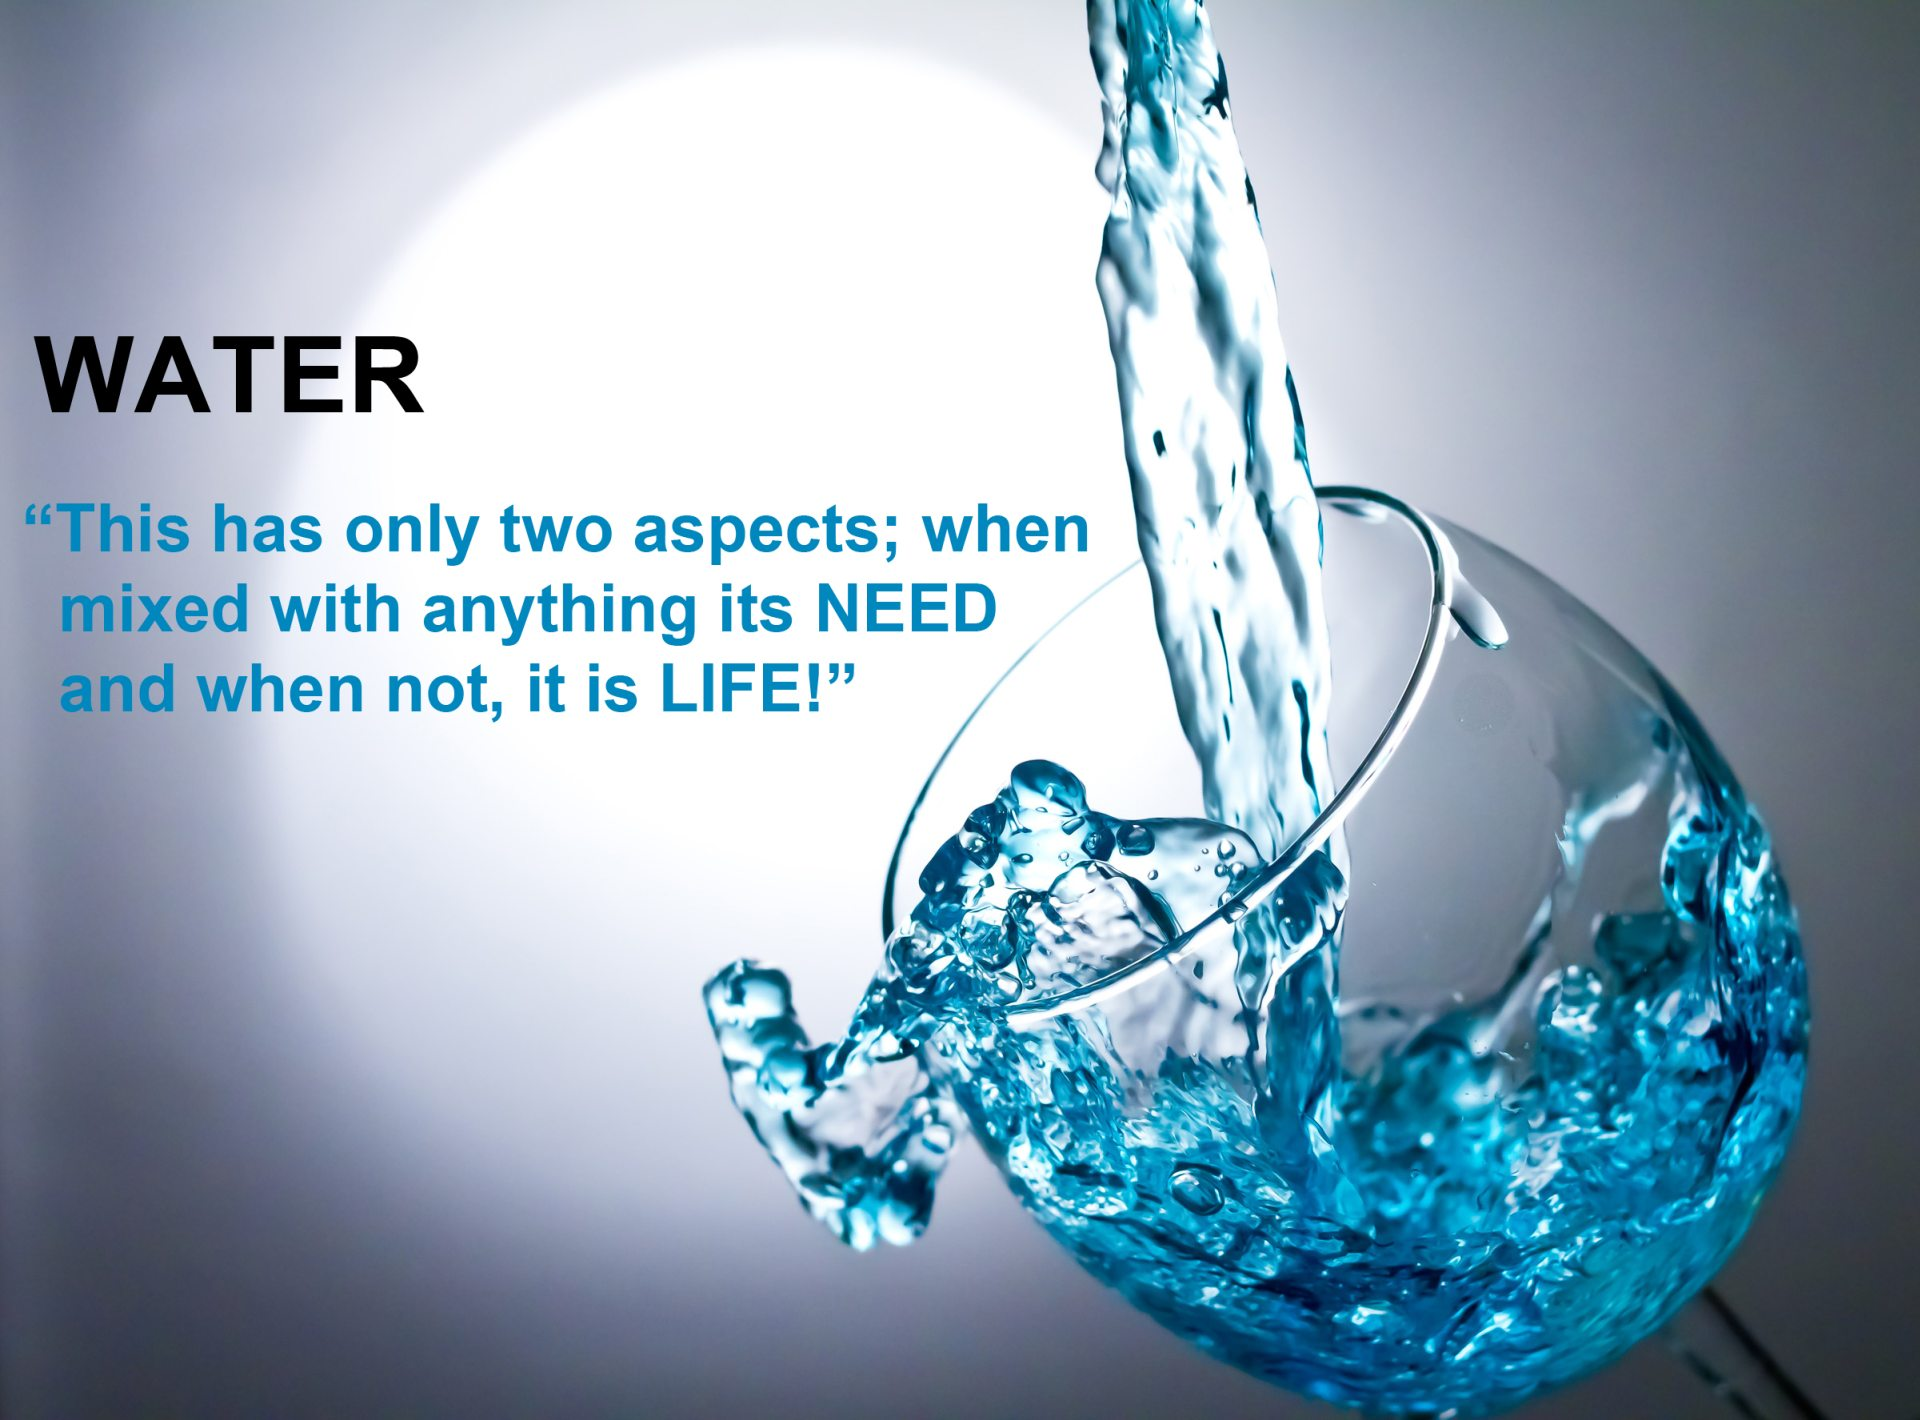 Water Quality quote #2